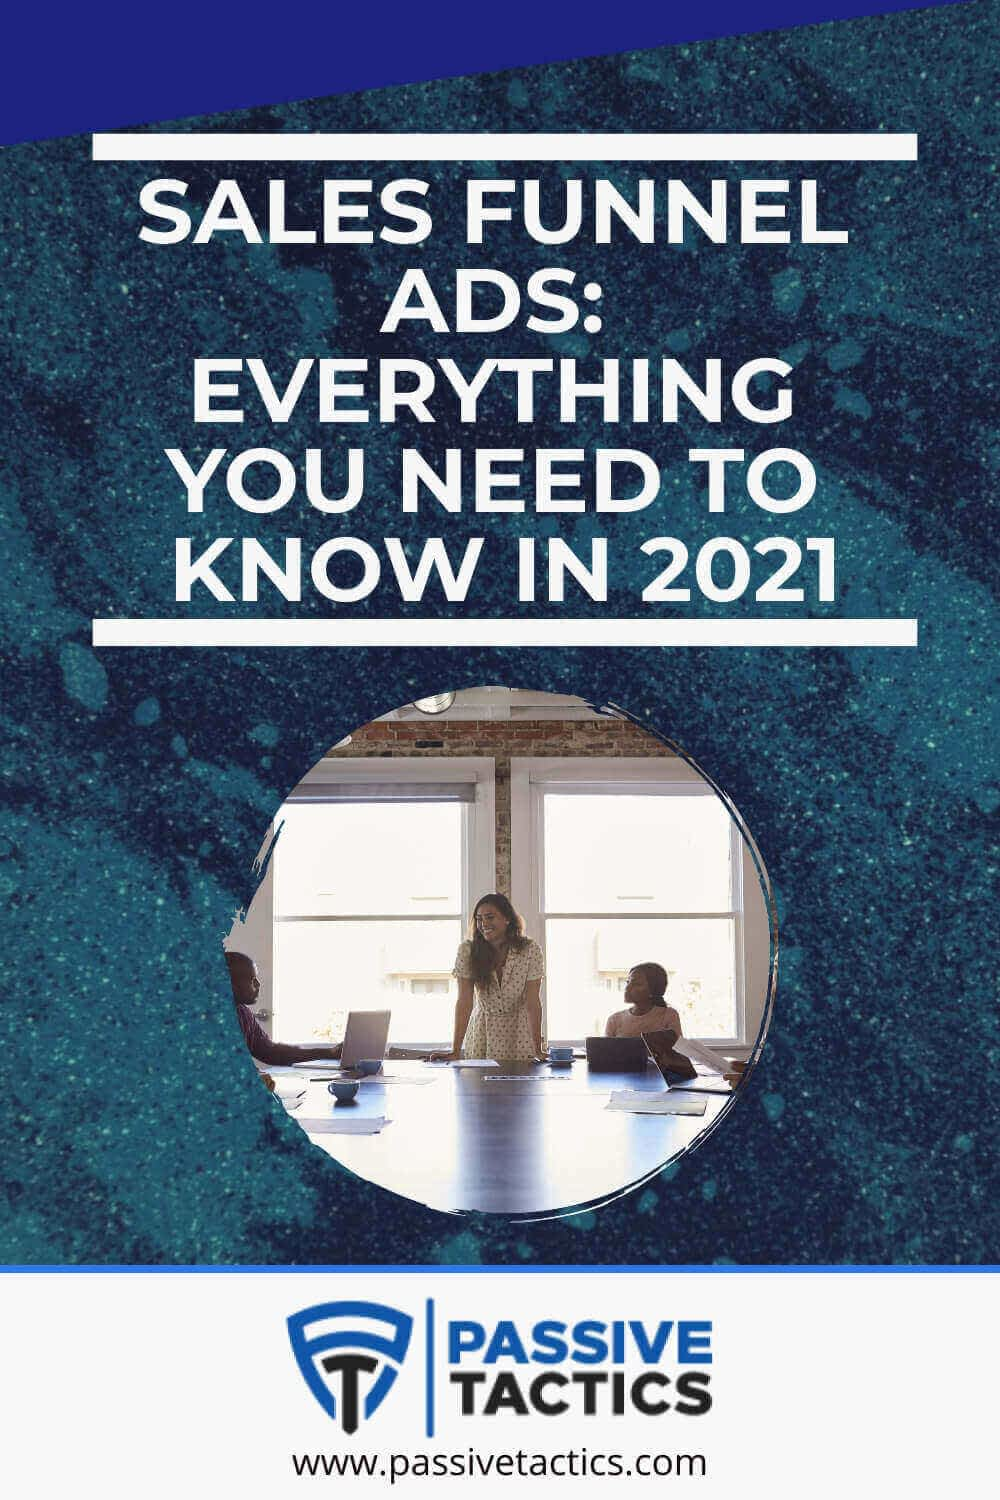 Sales Funnel Ads: Everything You Need To Know In 2021